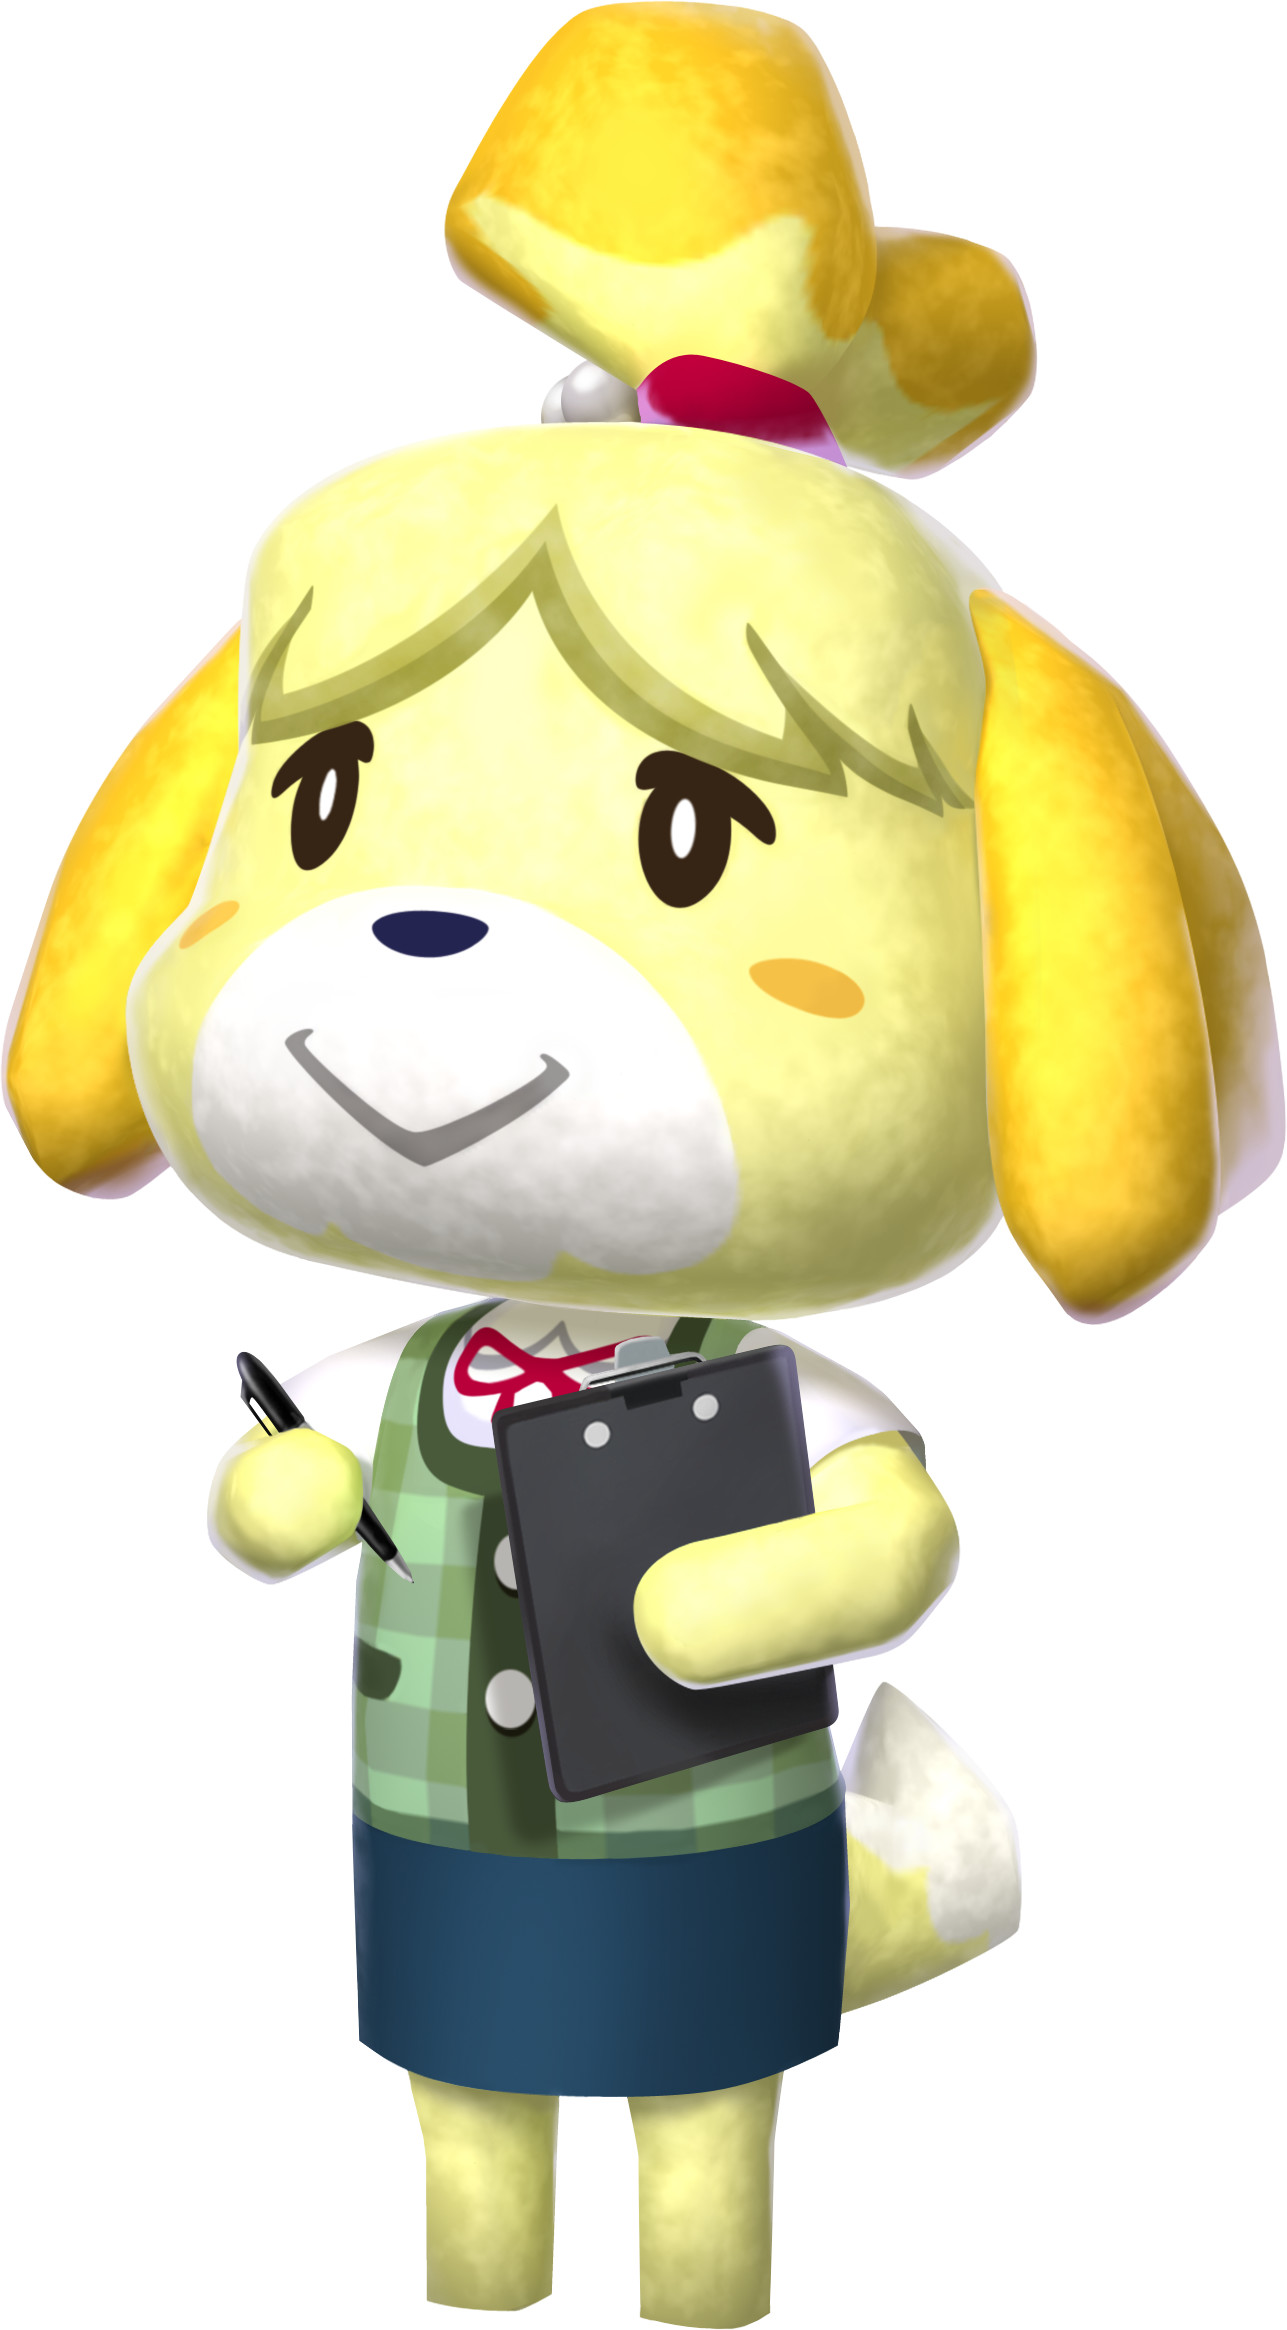 Res: 1287x2330, Images of Animal Crossing: New Leaf |